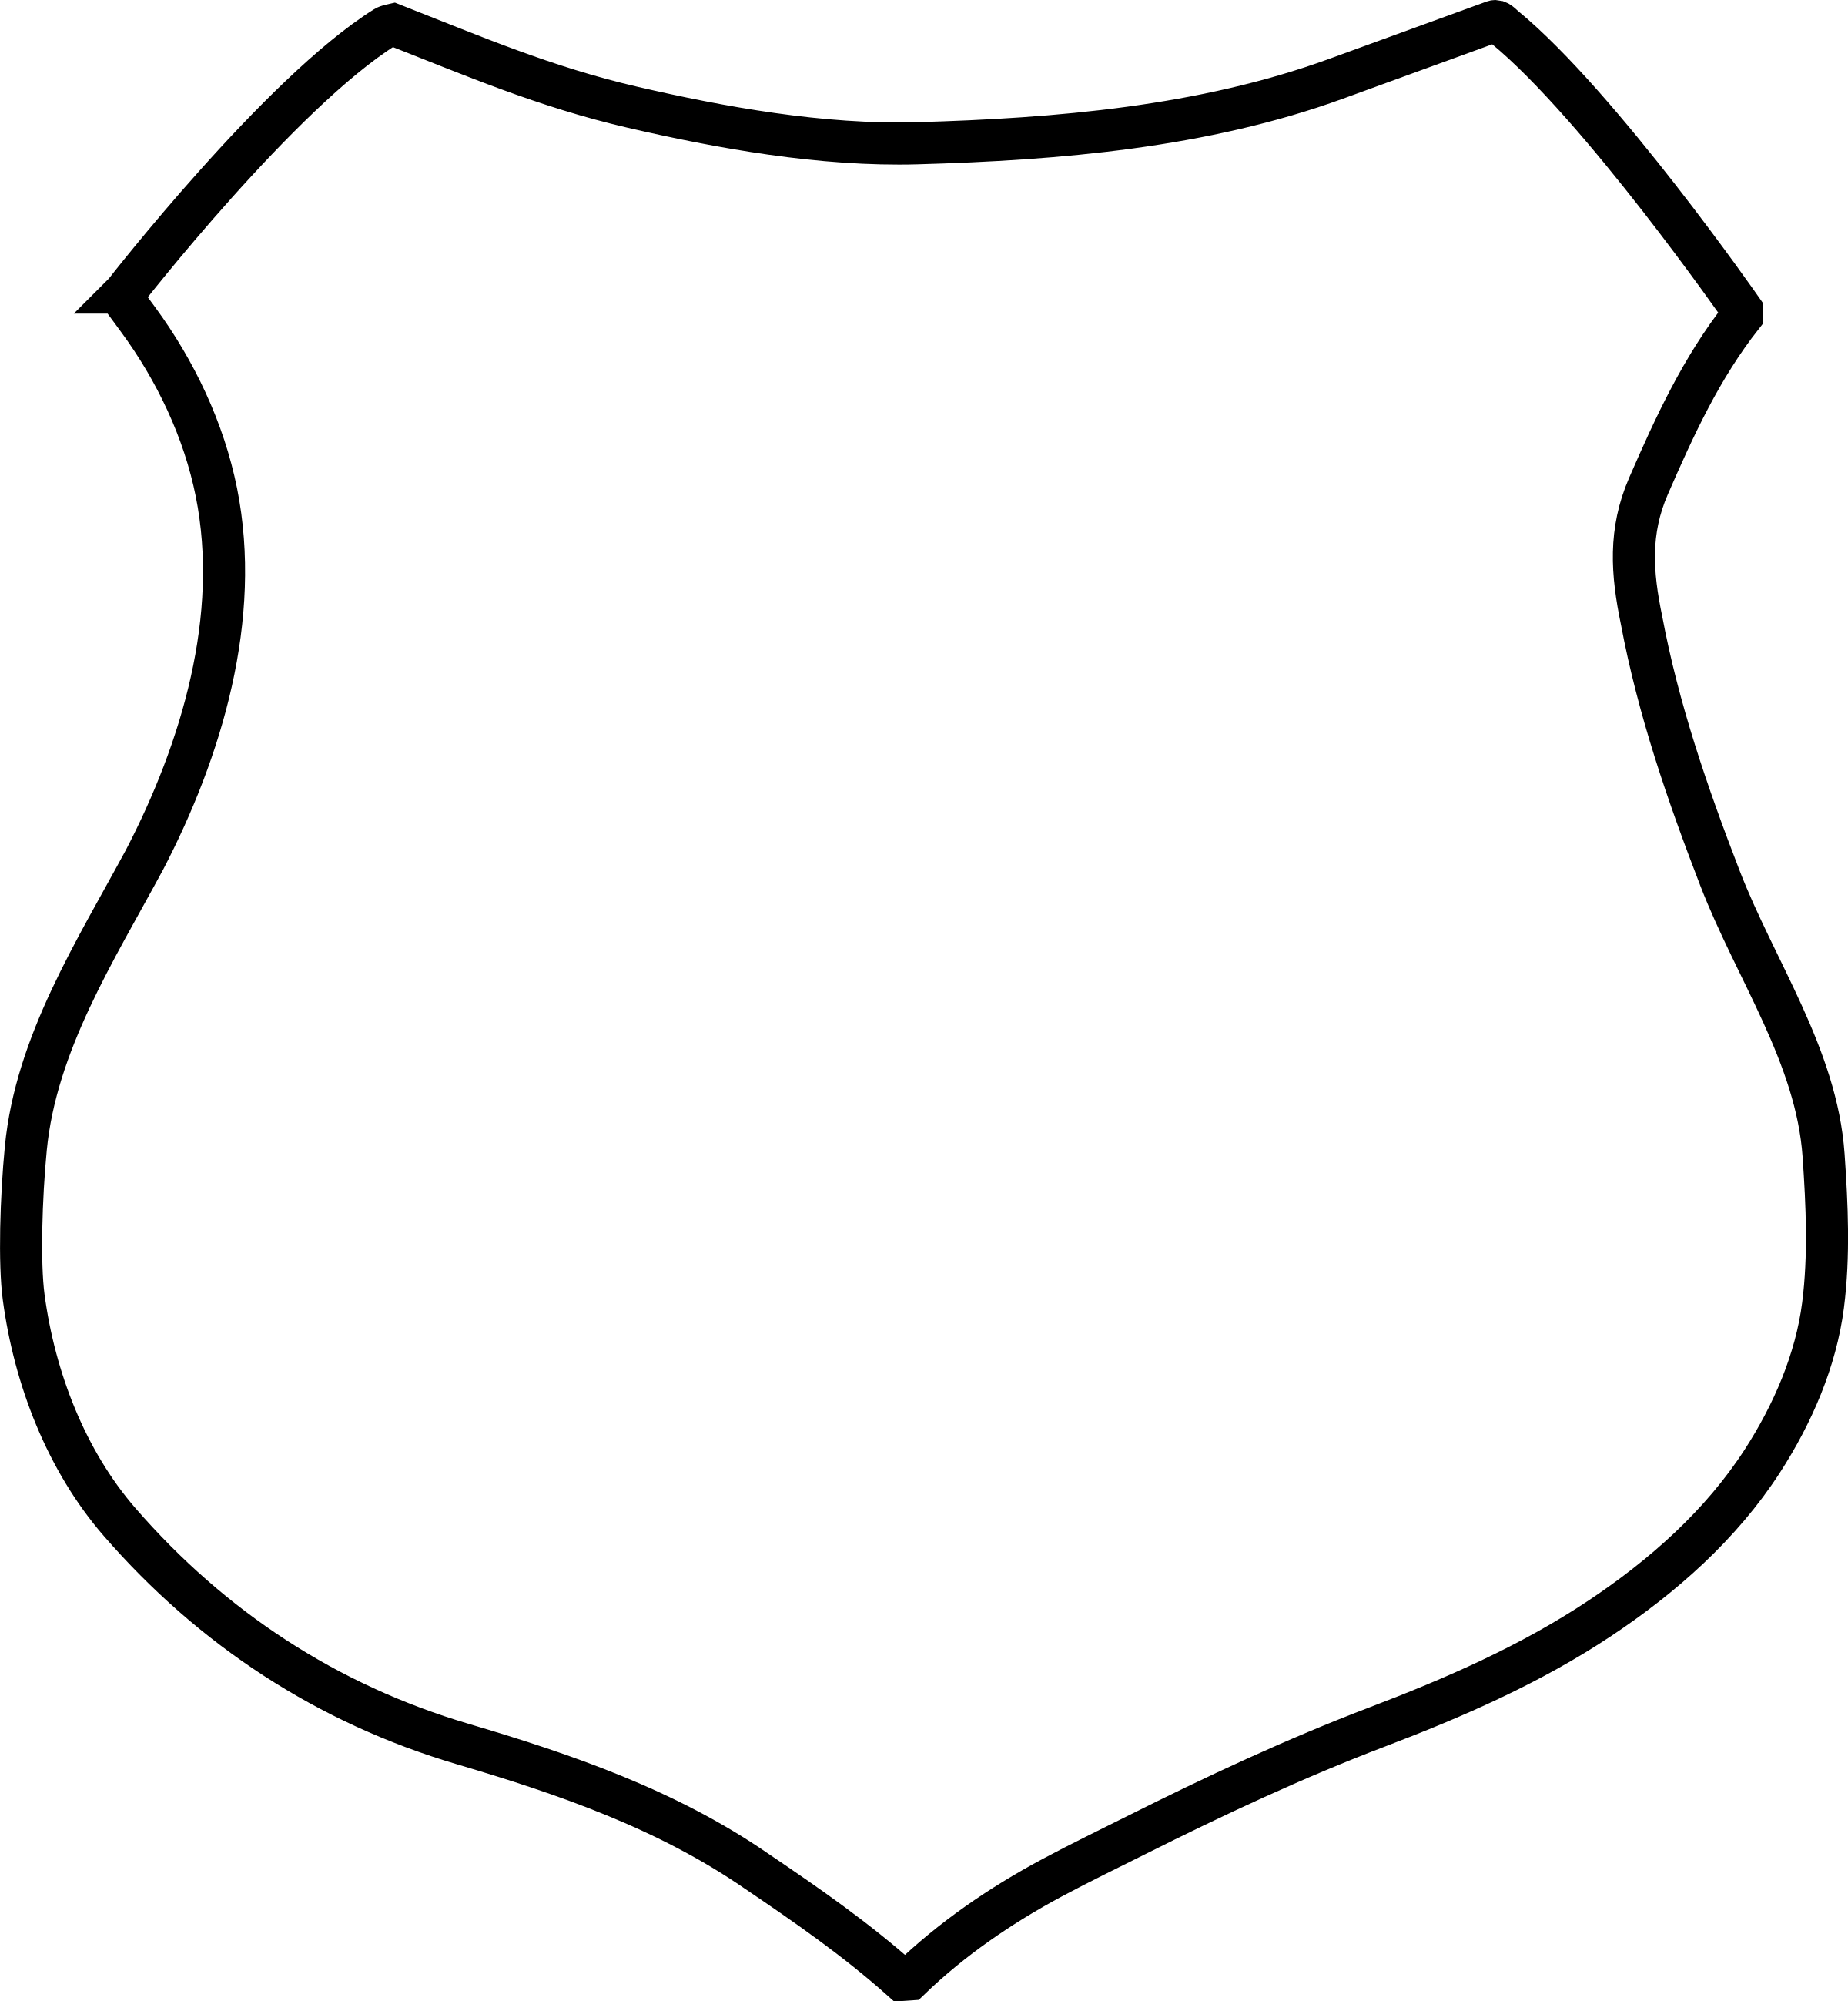 blank shield template printable - blank crest shield clipart best